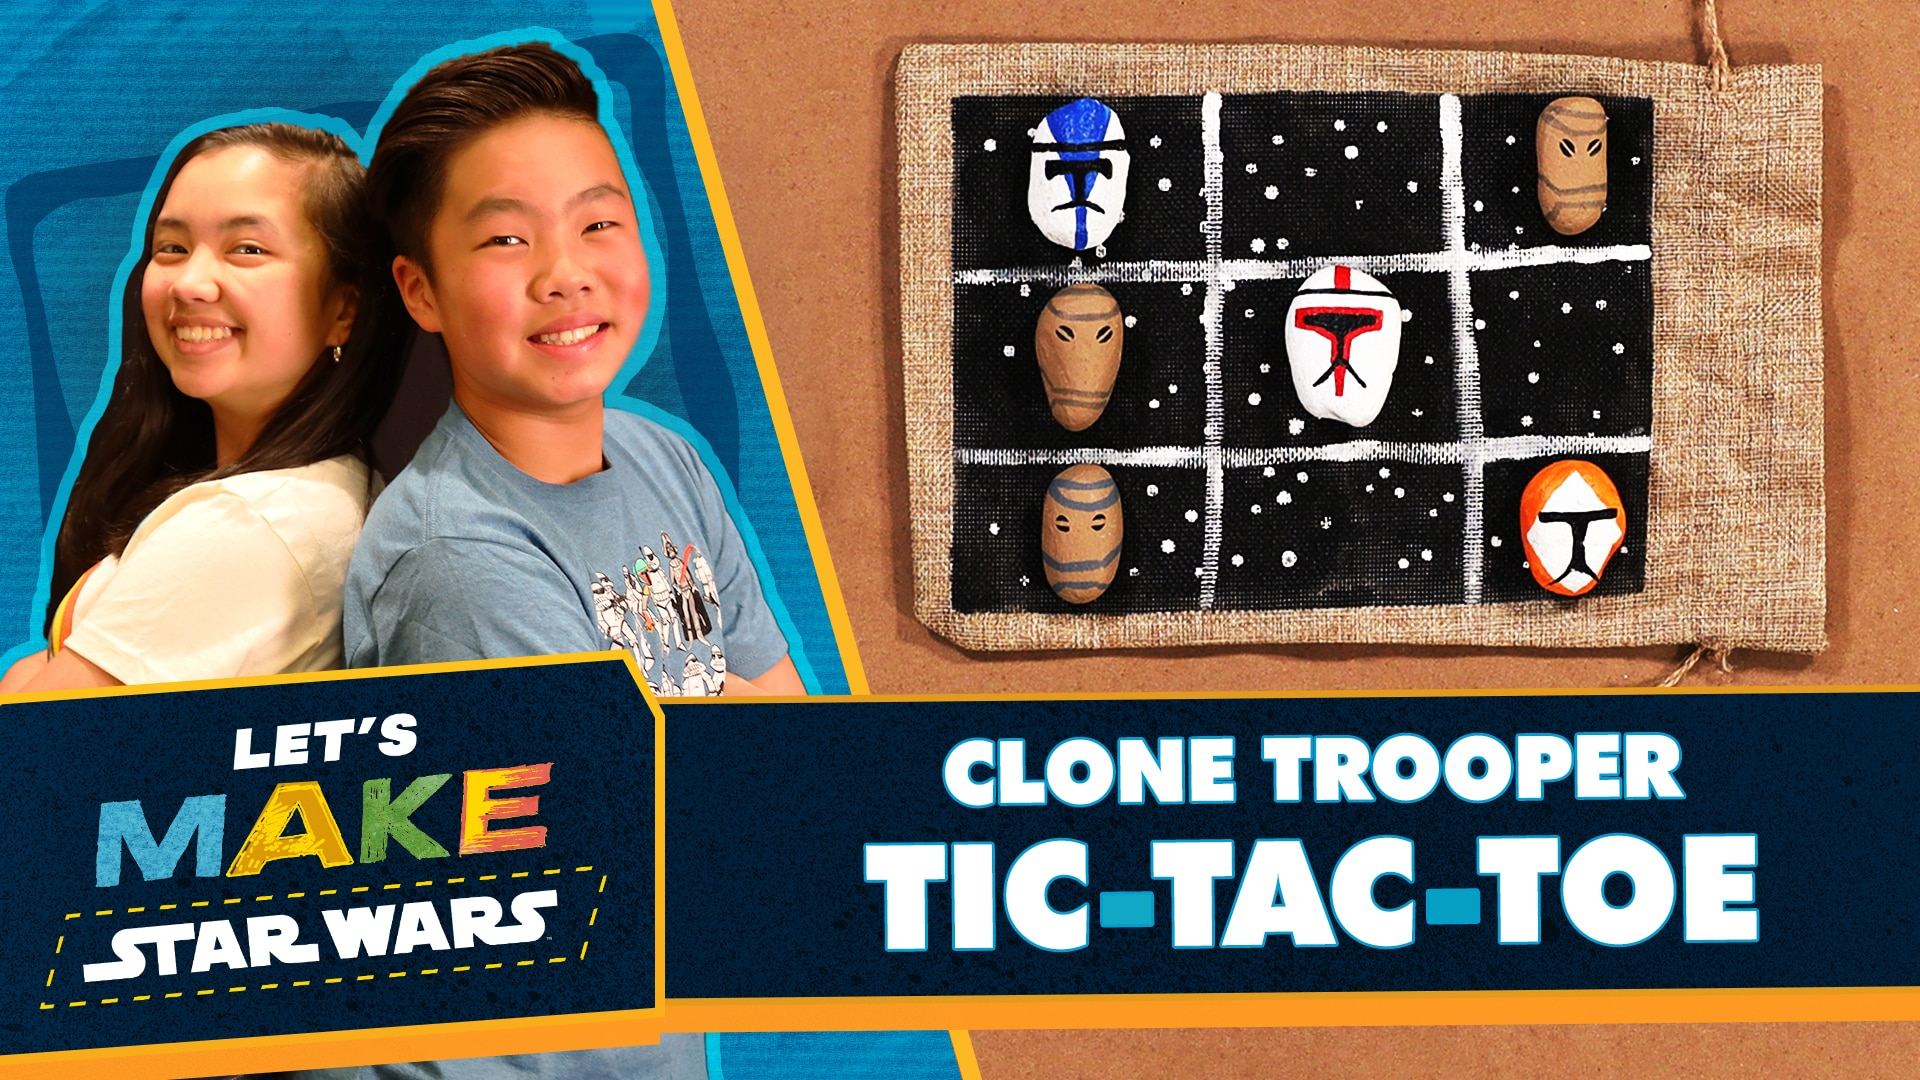 How to Make Star Wars: The Clone Wars Tic Tac Toe | Let's Make Star Wars